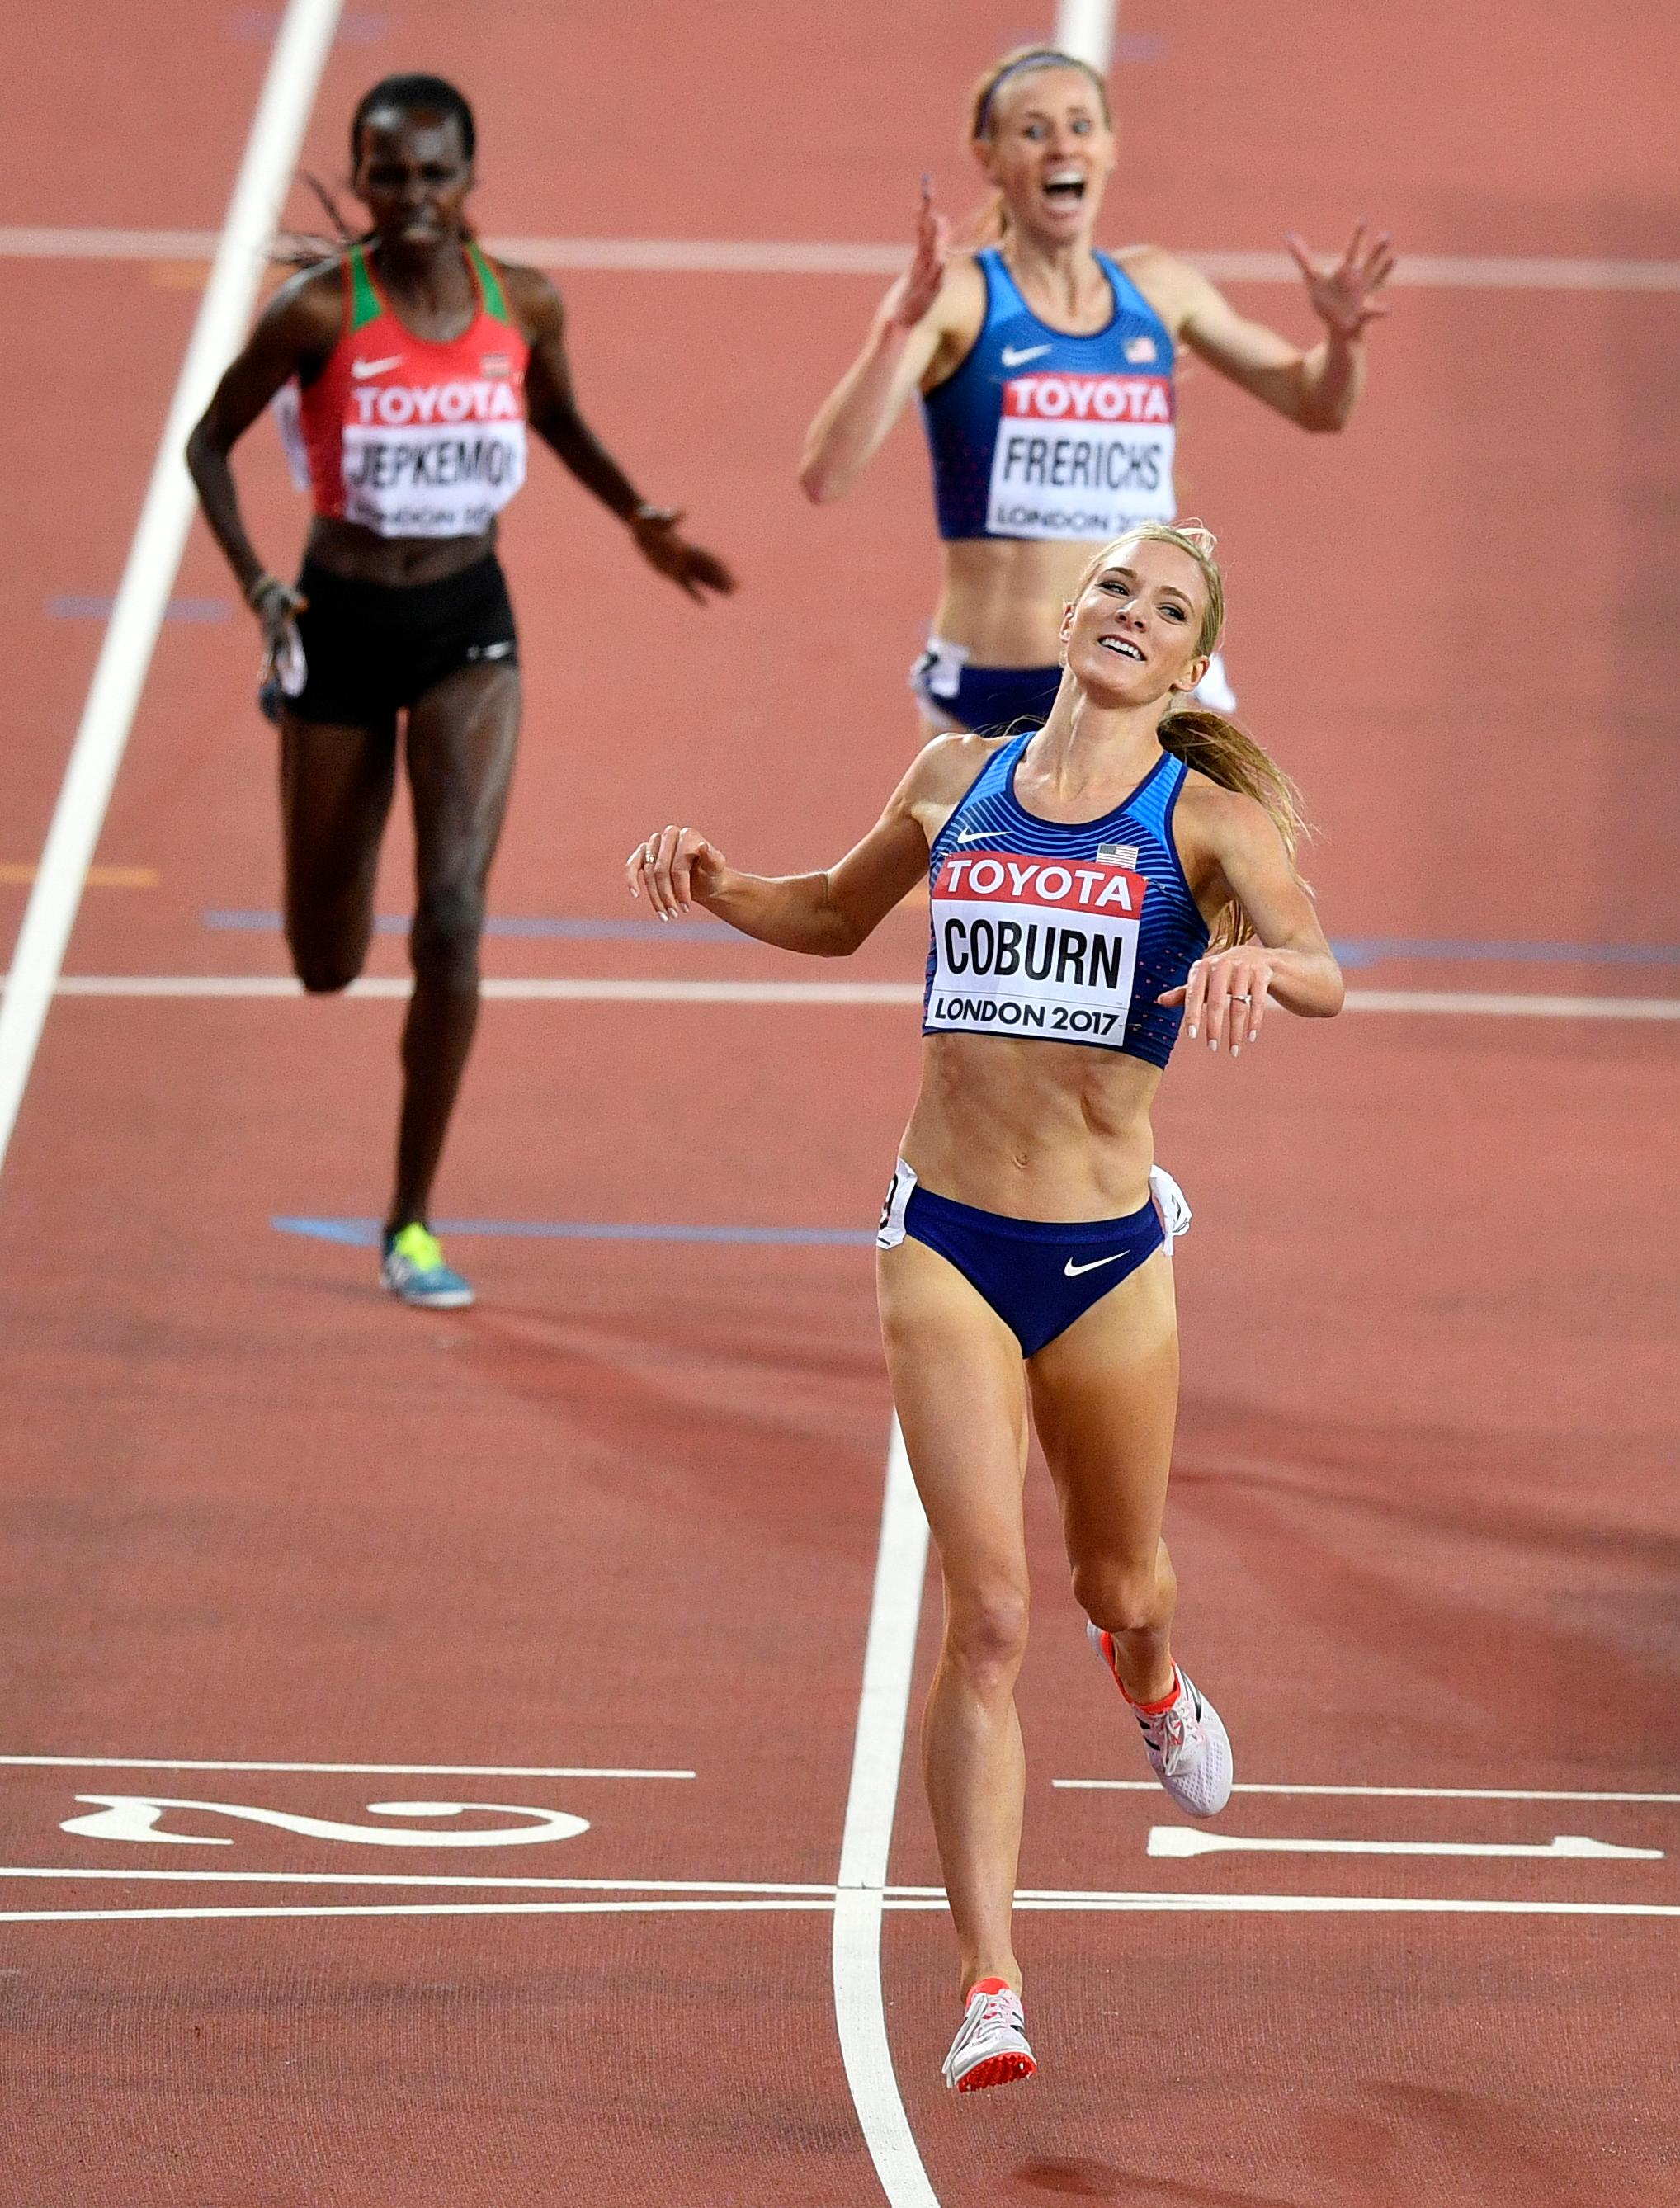 United States' Emma Coburn celebrates as she wins the Women's 3000 meters steeplechase final at the World Athletics Championships in London Friday, Aug. 11, 2017. (AP Photo/Martin Meissner)